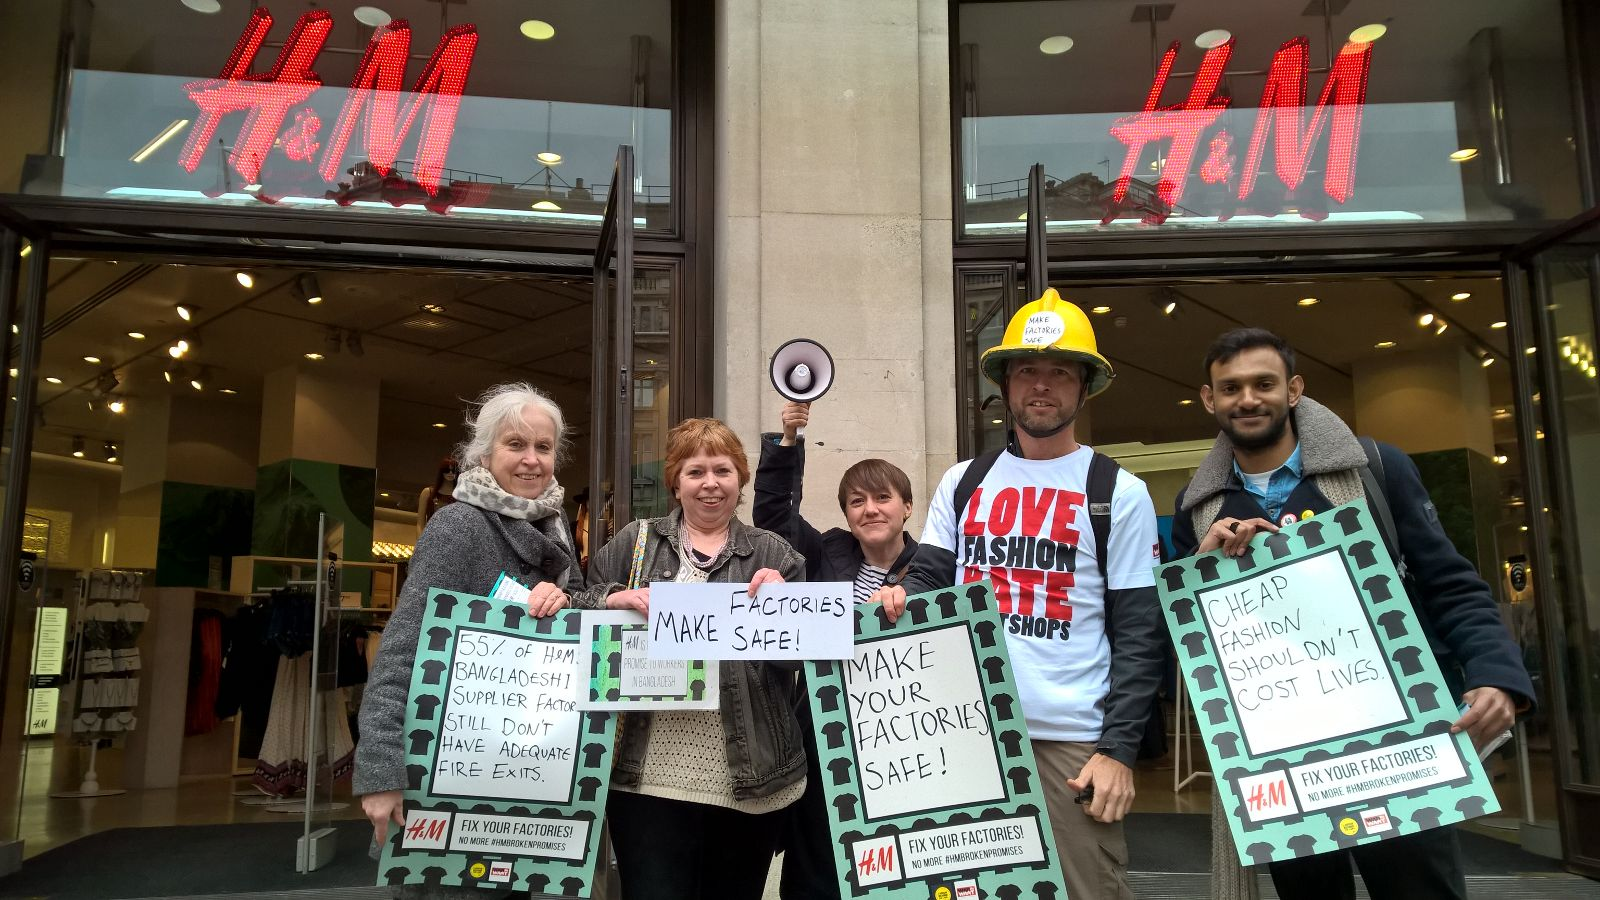 Labour Behind the Label protesting in front of an H&M store.